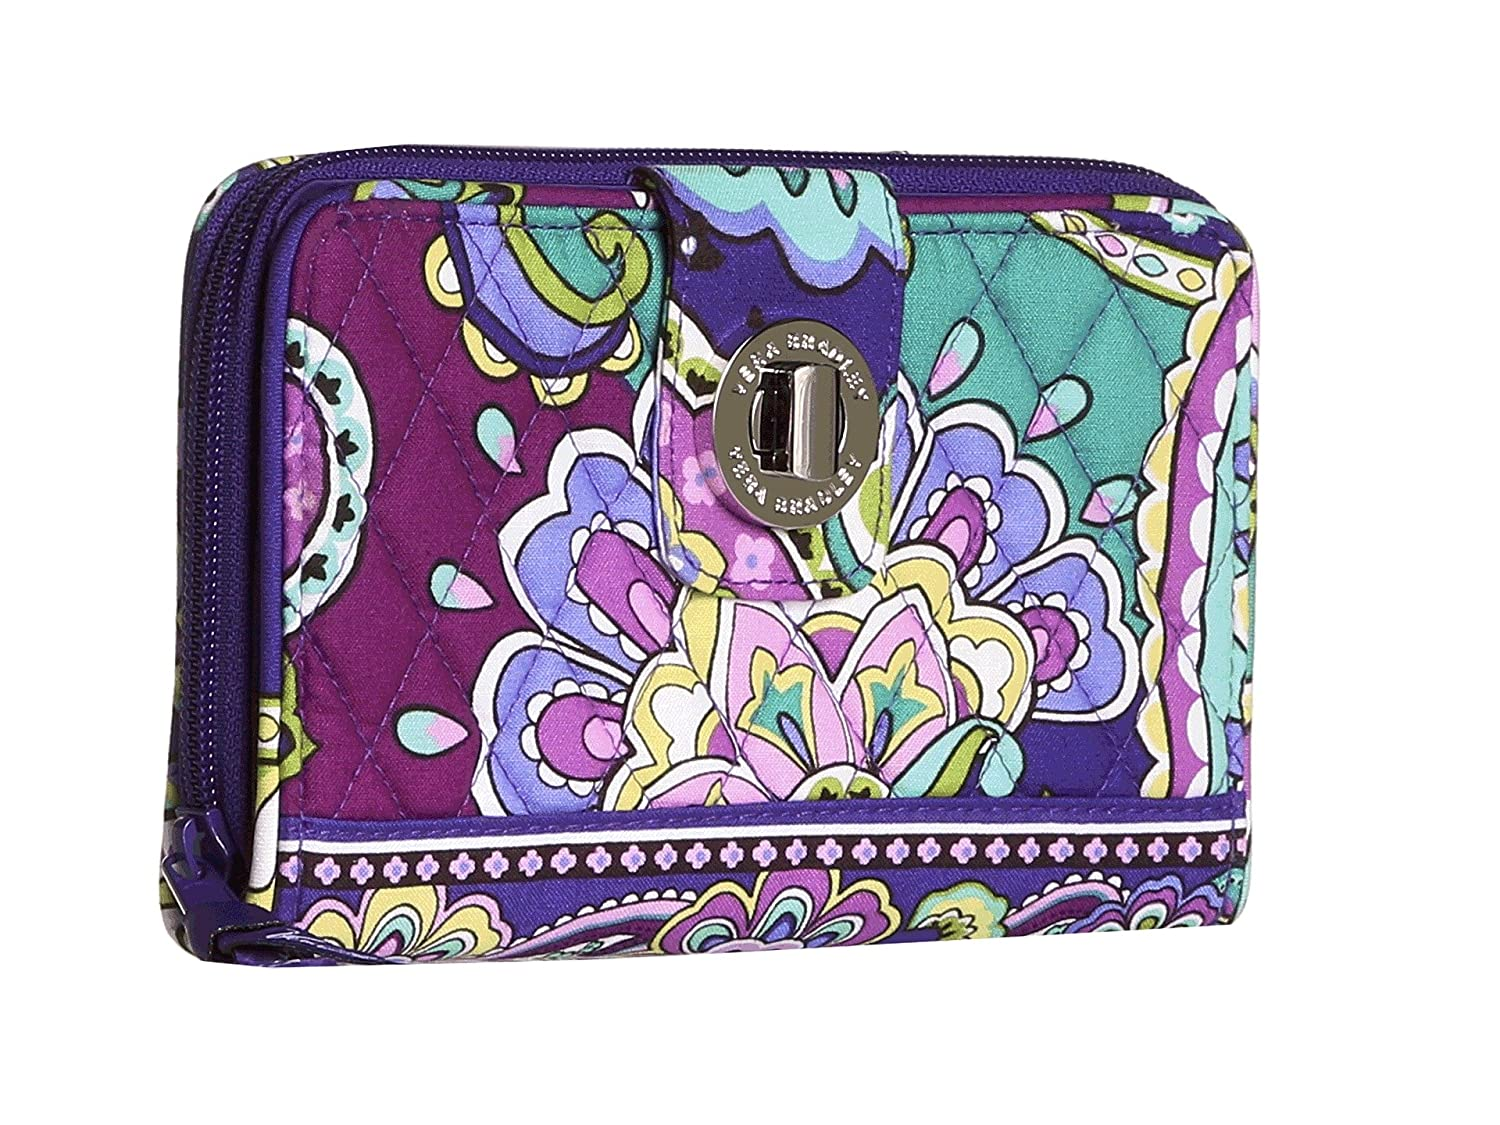 Vera Bradley Turnlock Wallet, Signature Cotton 10913-165